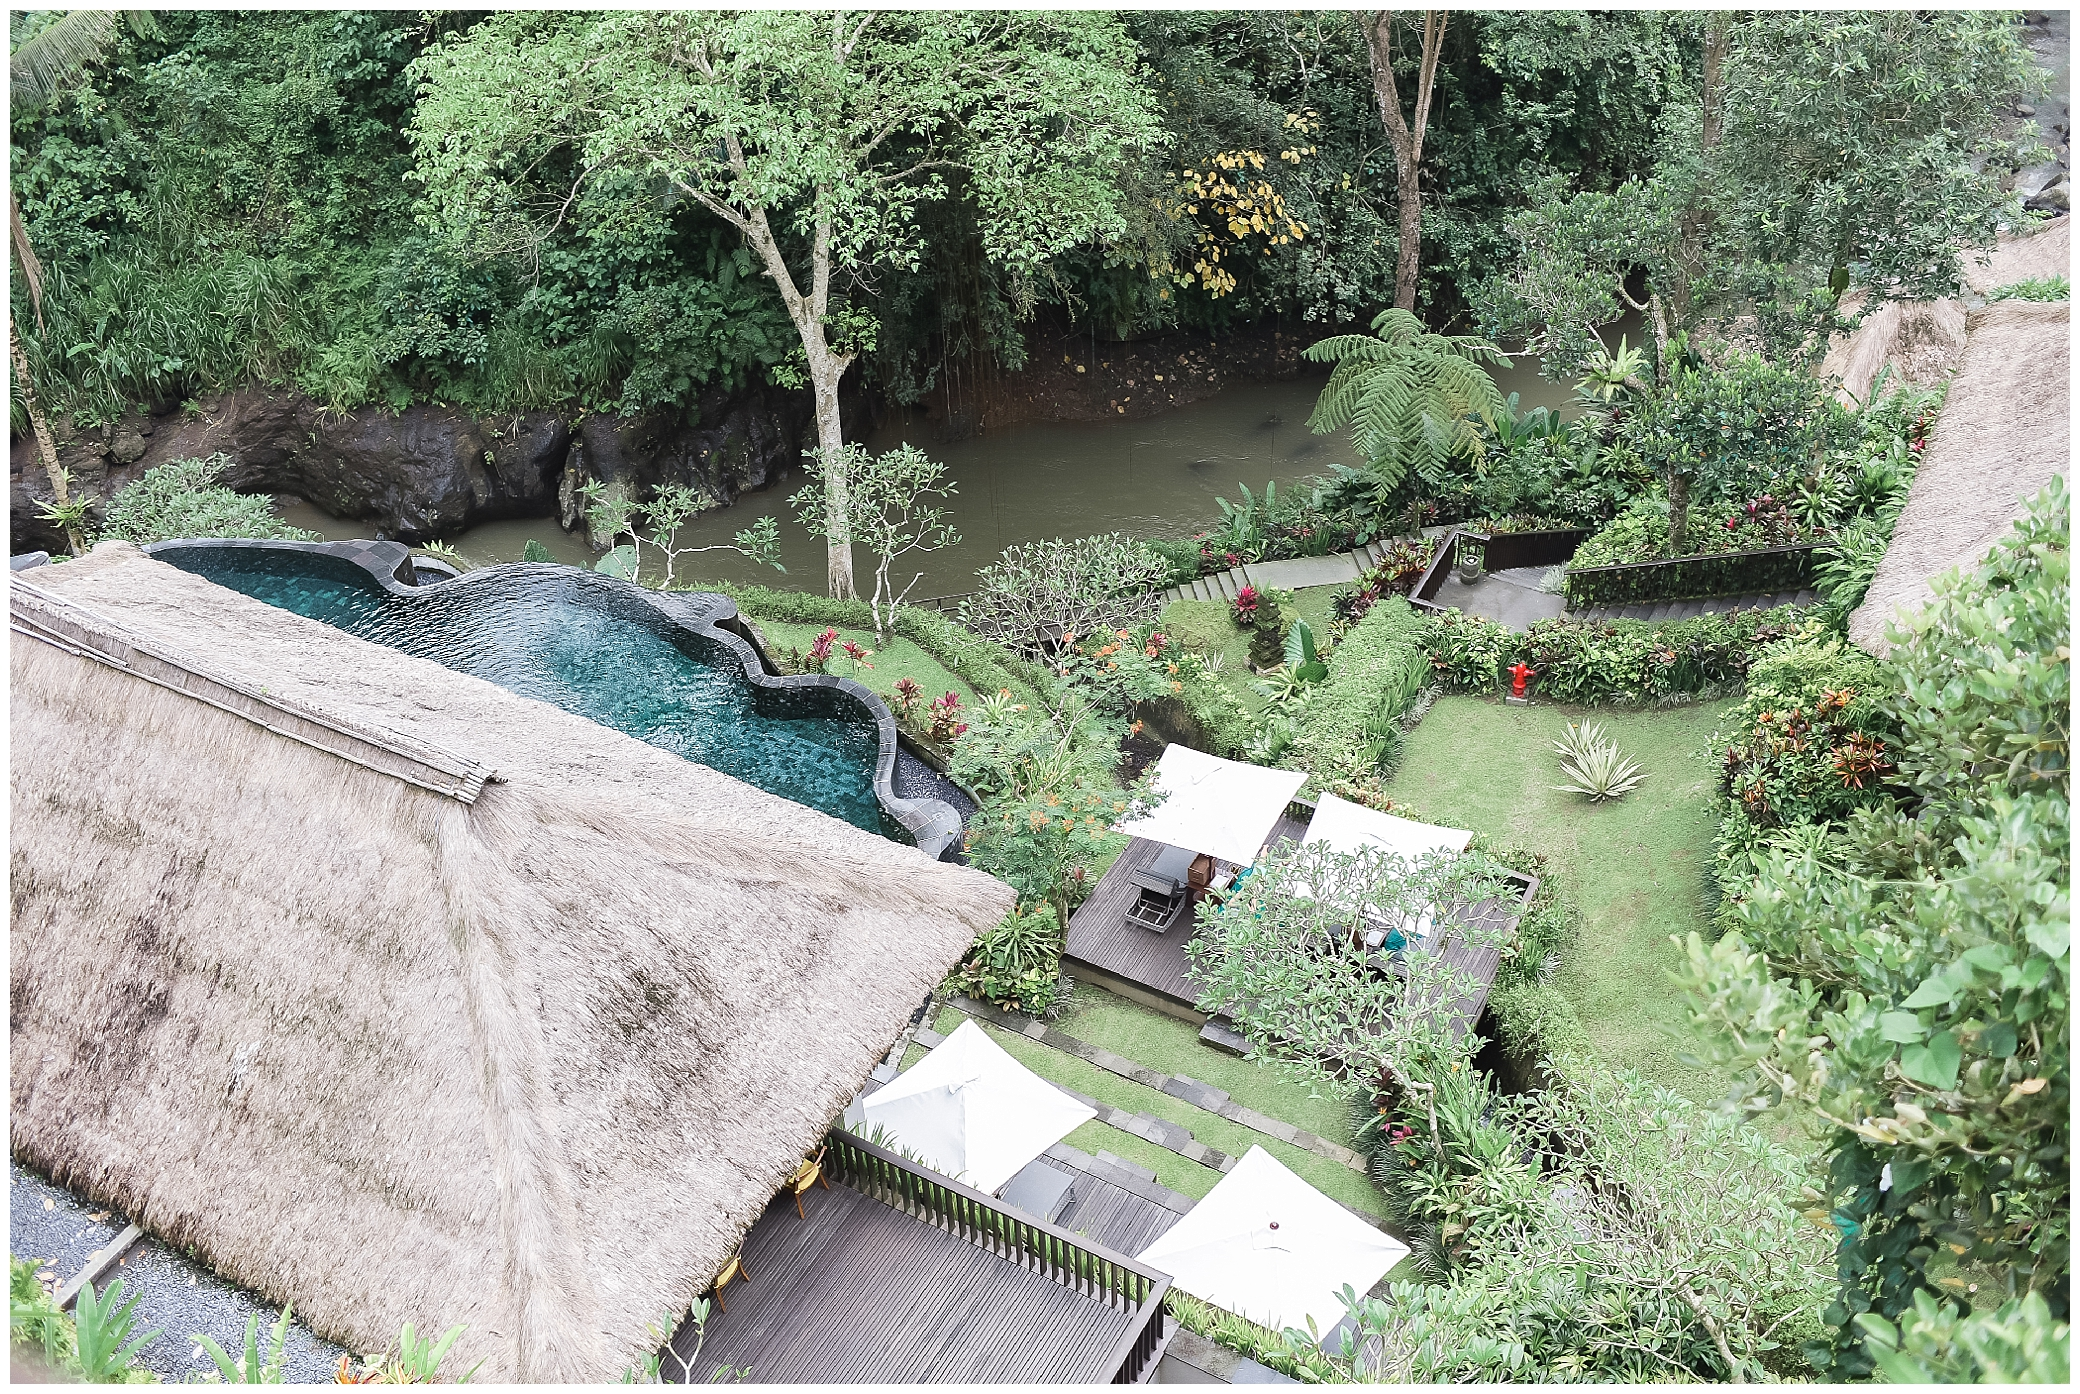 Top 10 Awesome Things To Do In Ubud_0016.jpg